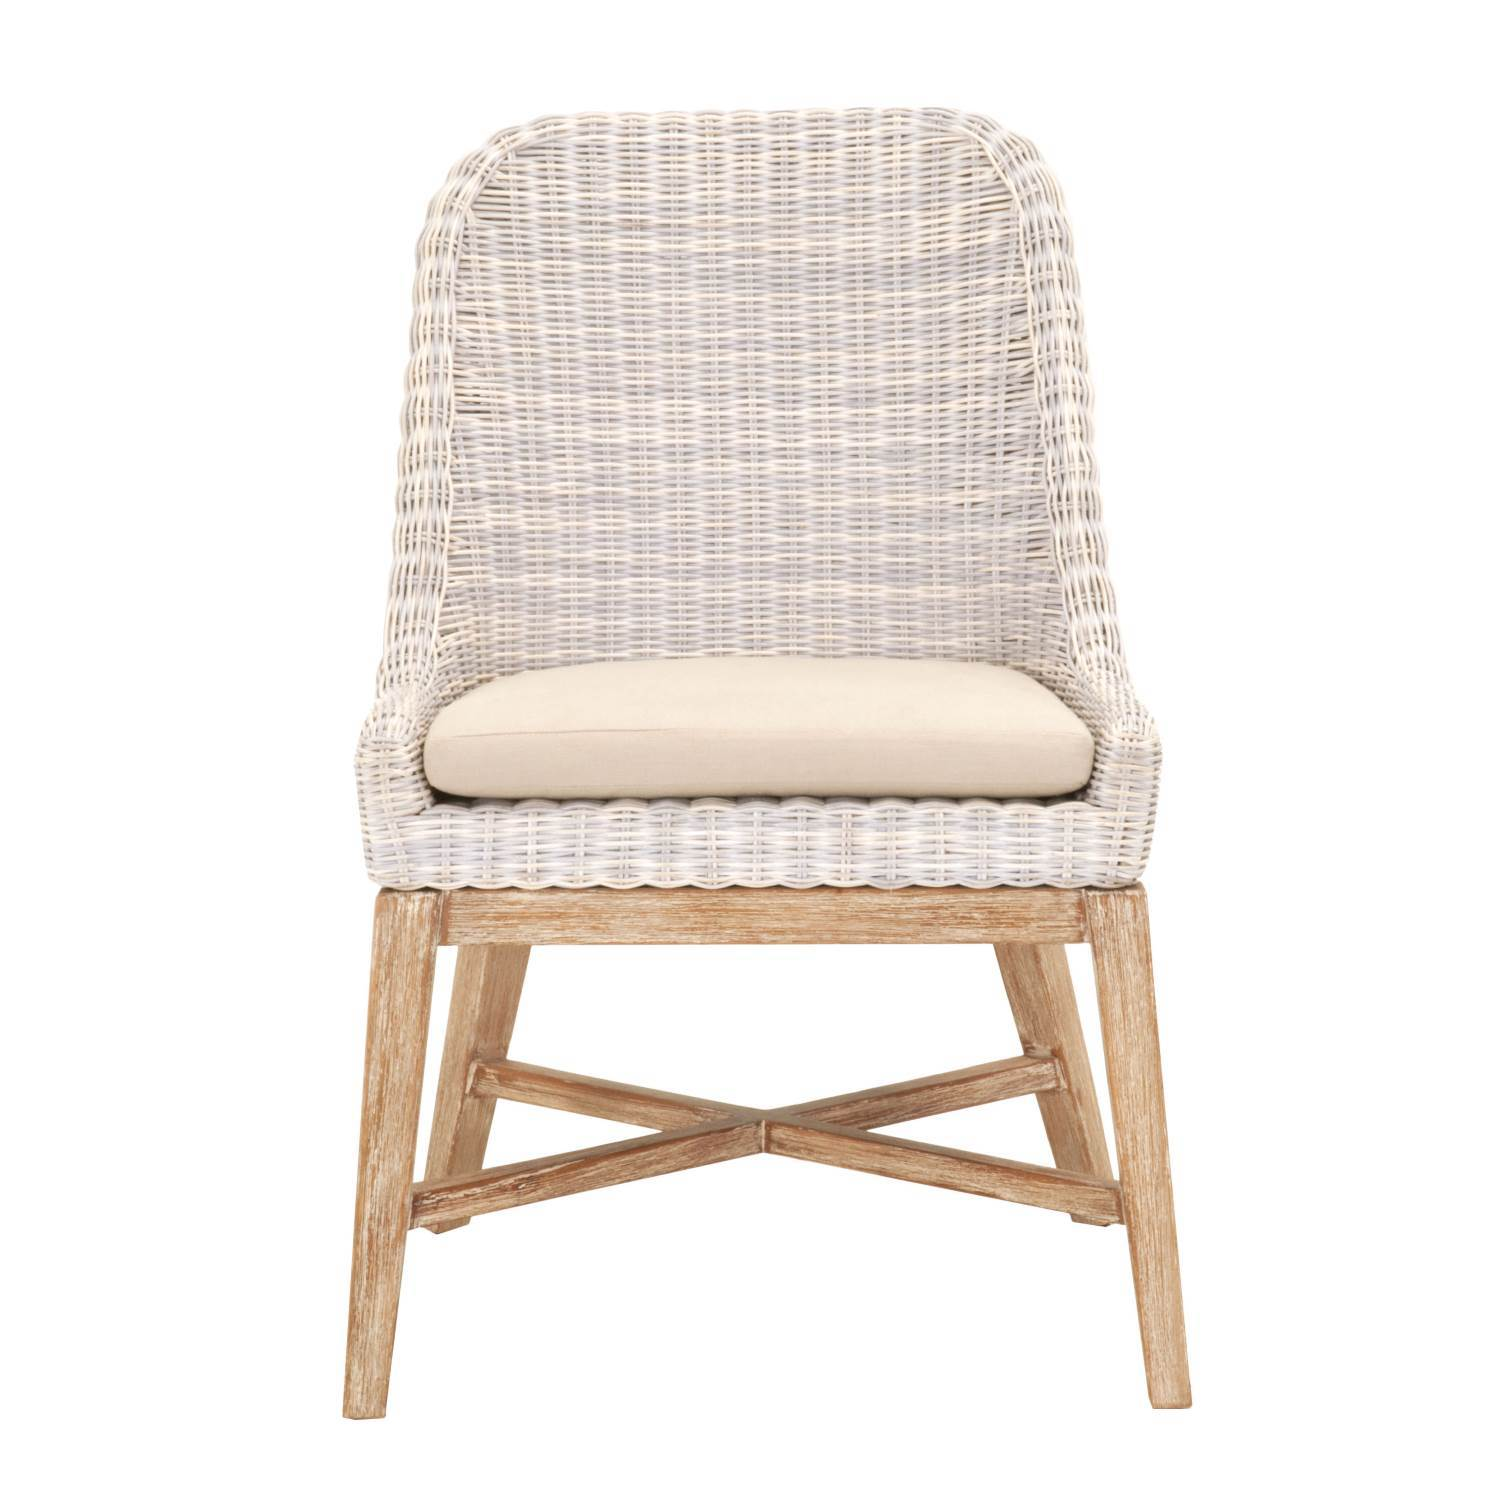 Plage Dining Chair (Set of 2) in 3mm Cream White Loom